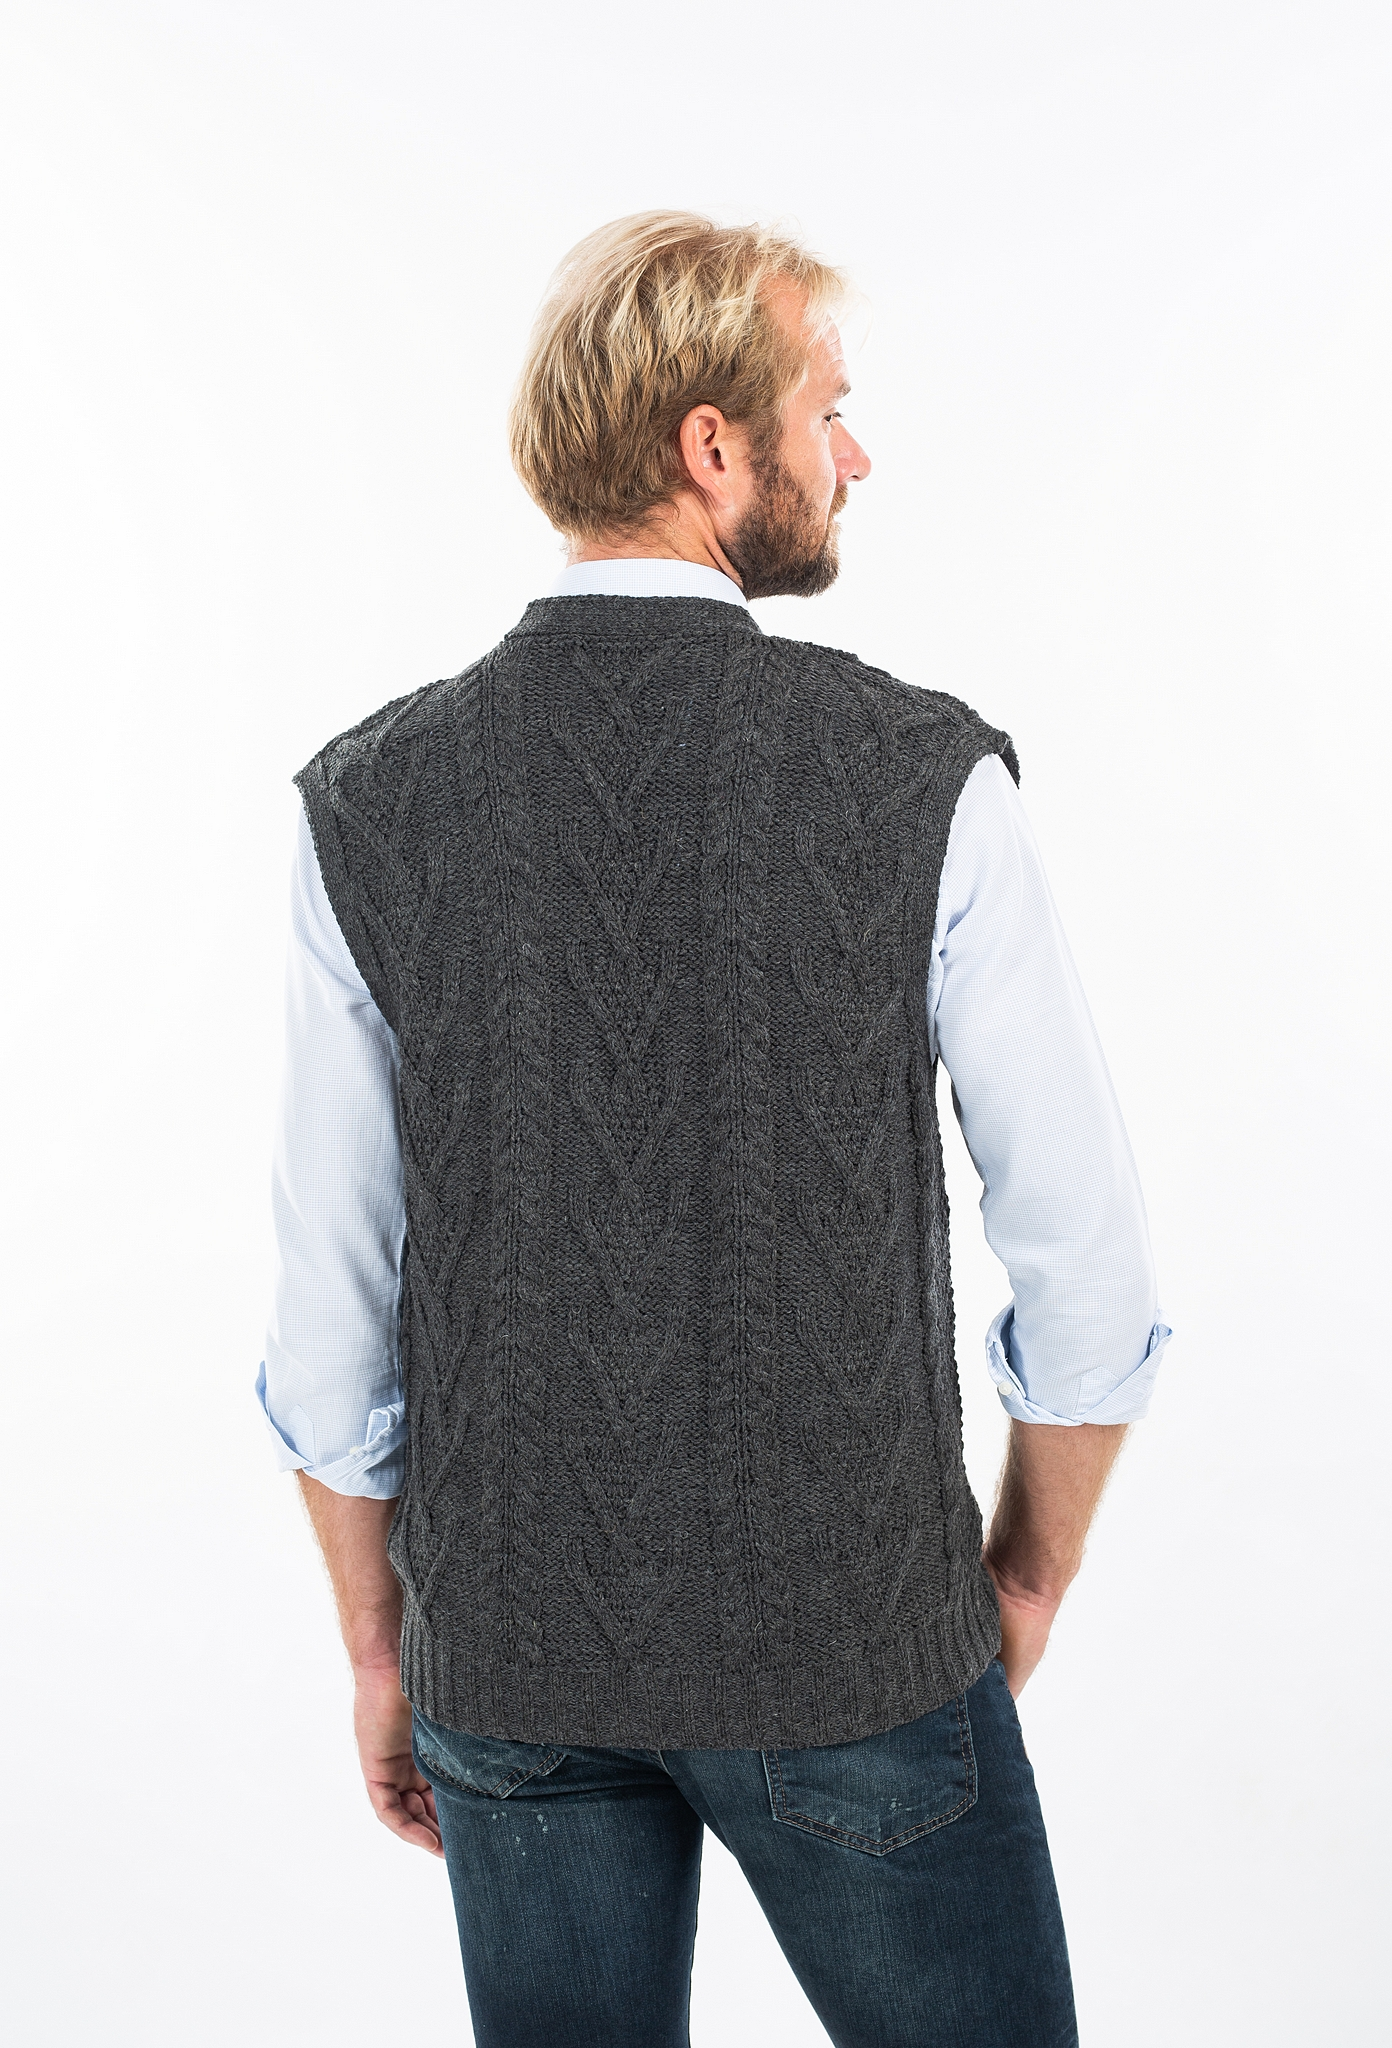 SAOL 100/% Merino Wool Mens V Neck Vest Sleeveless Irish Cable Knit Cardigan Sweater with Buttons and Pockets